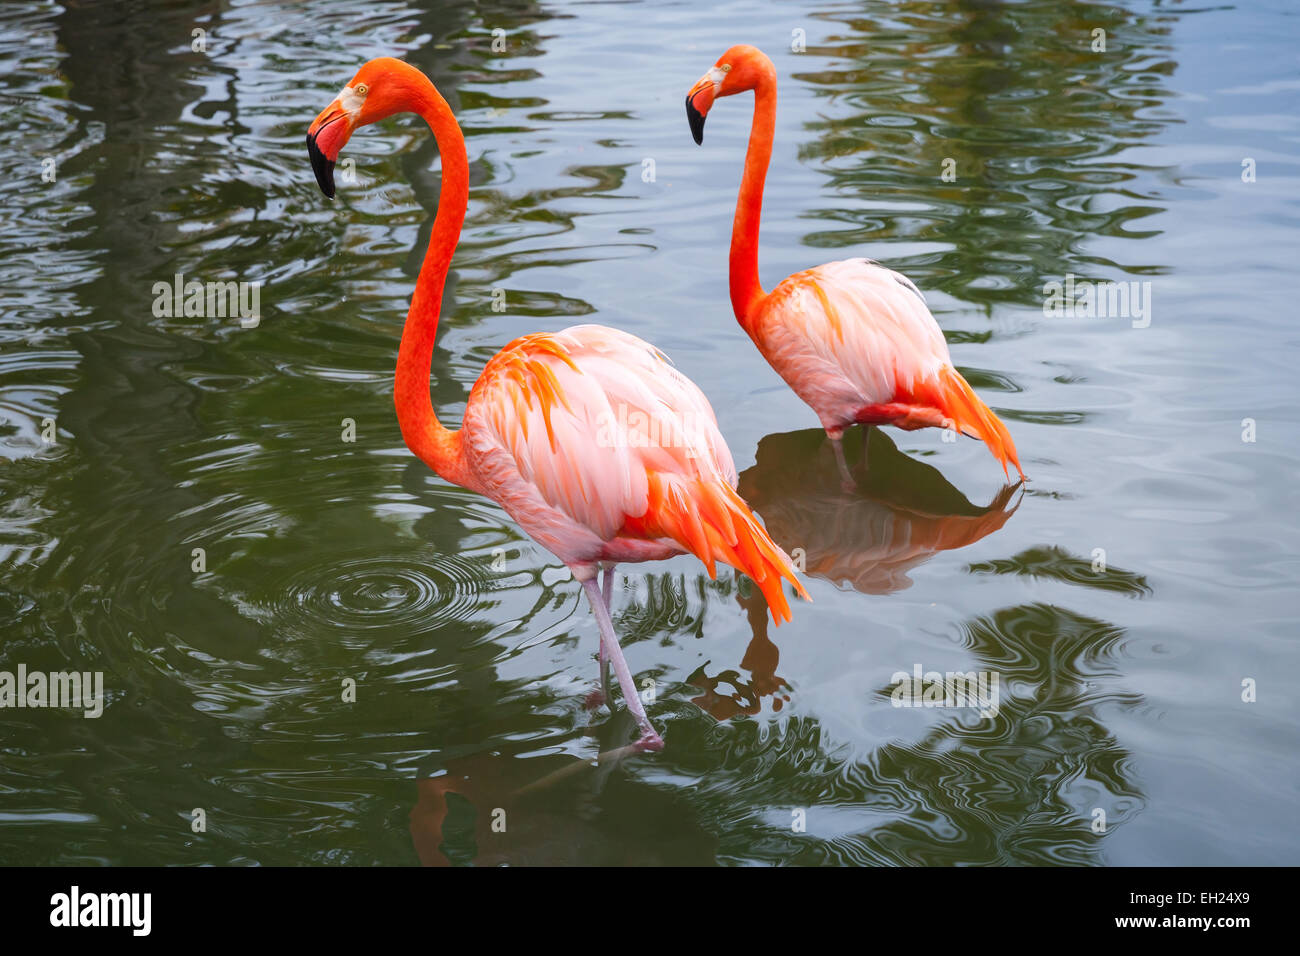 Two pink flamingos walking in the shallow water Stock Photo